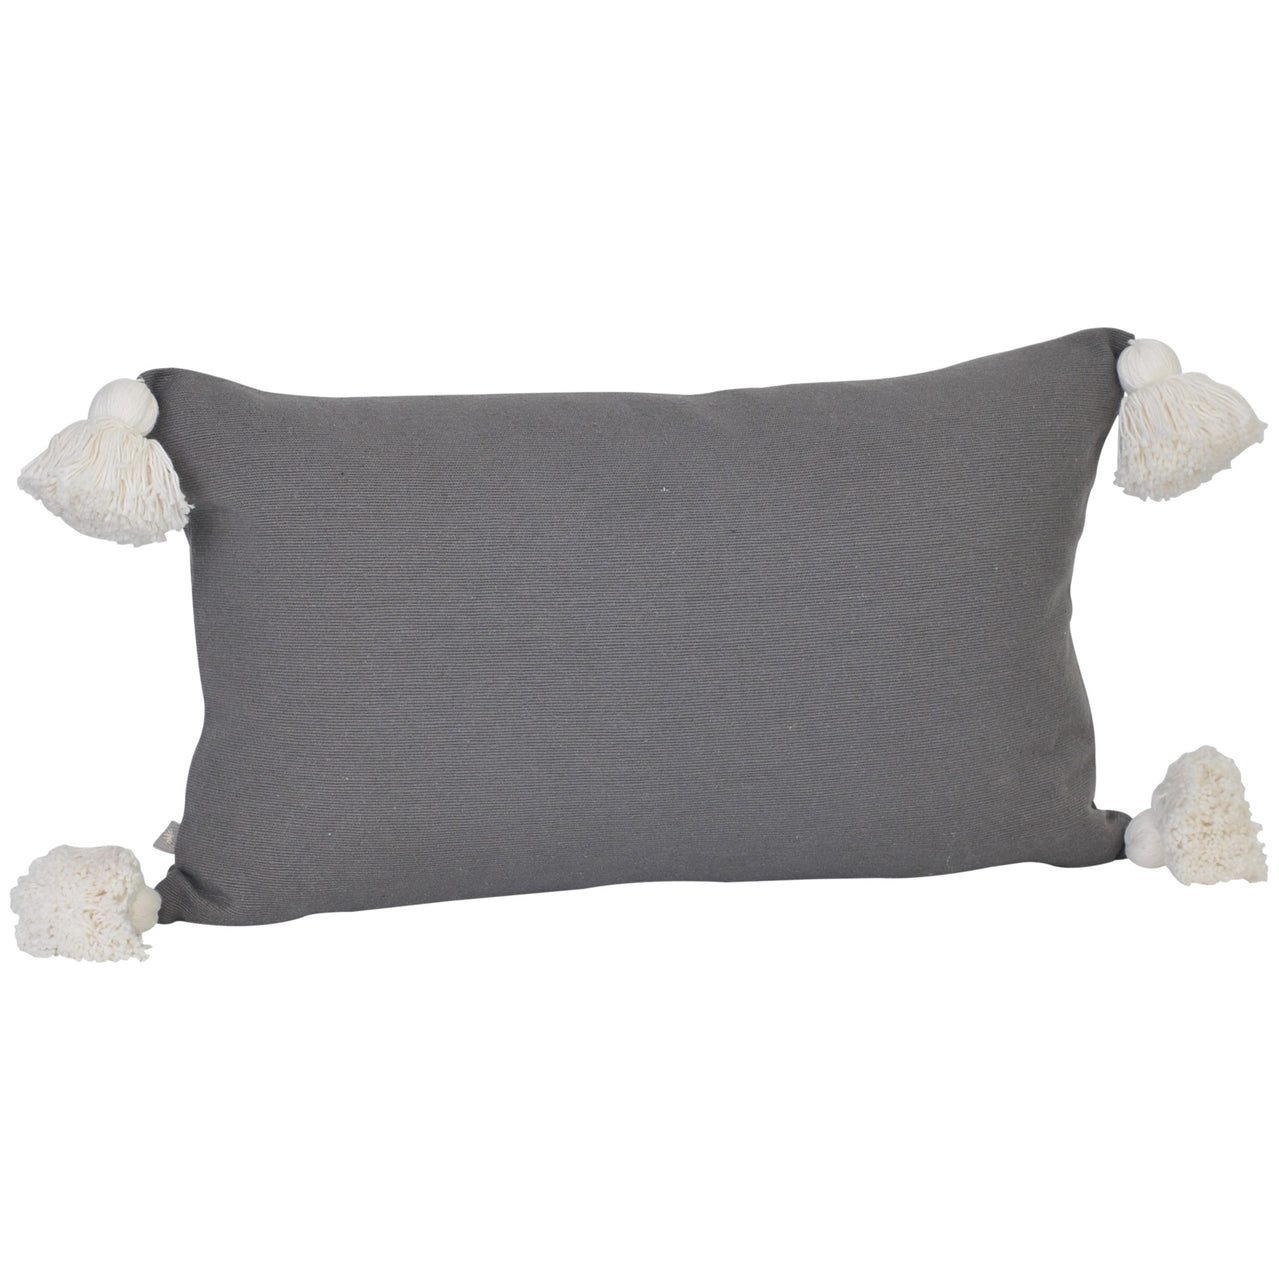 Soho Tassel Lumbar Cushion- Charcoal